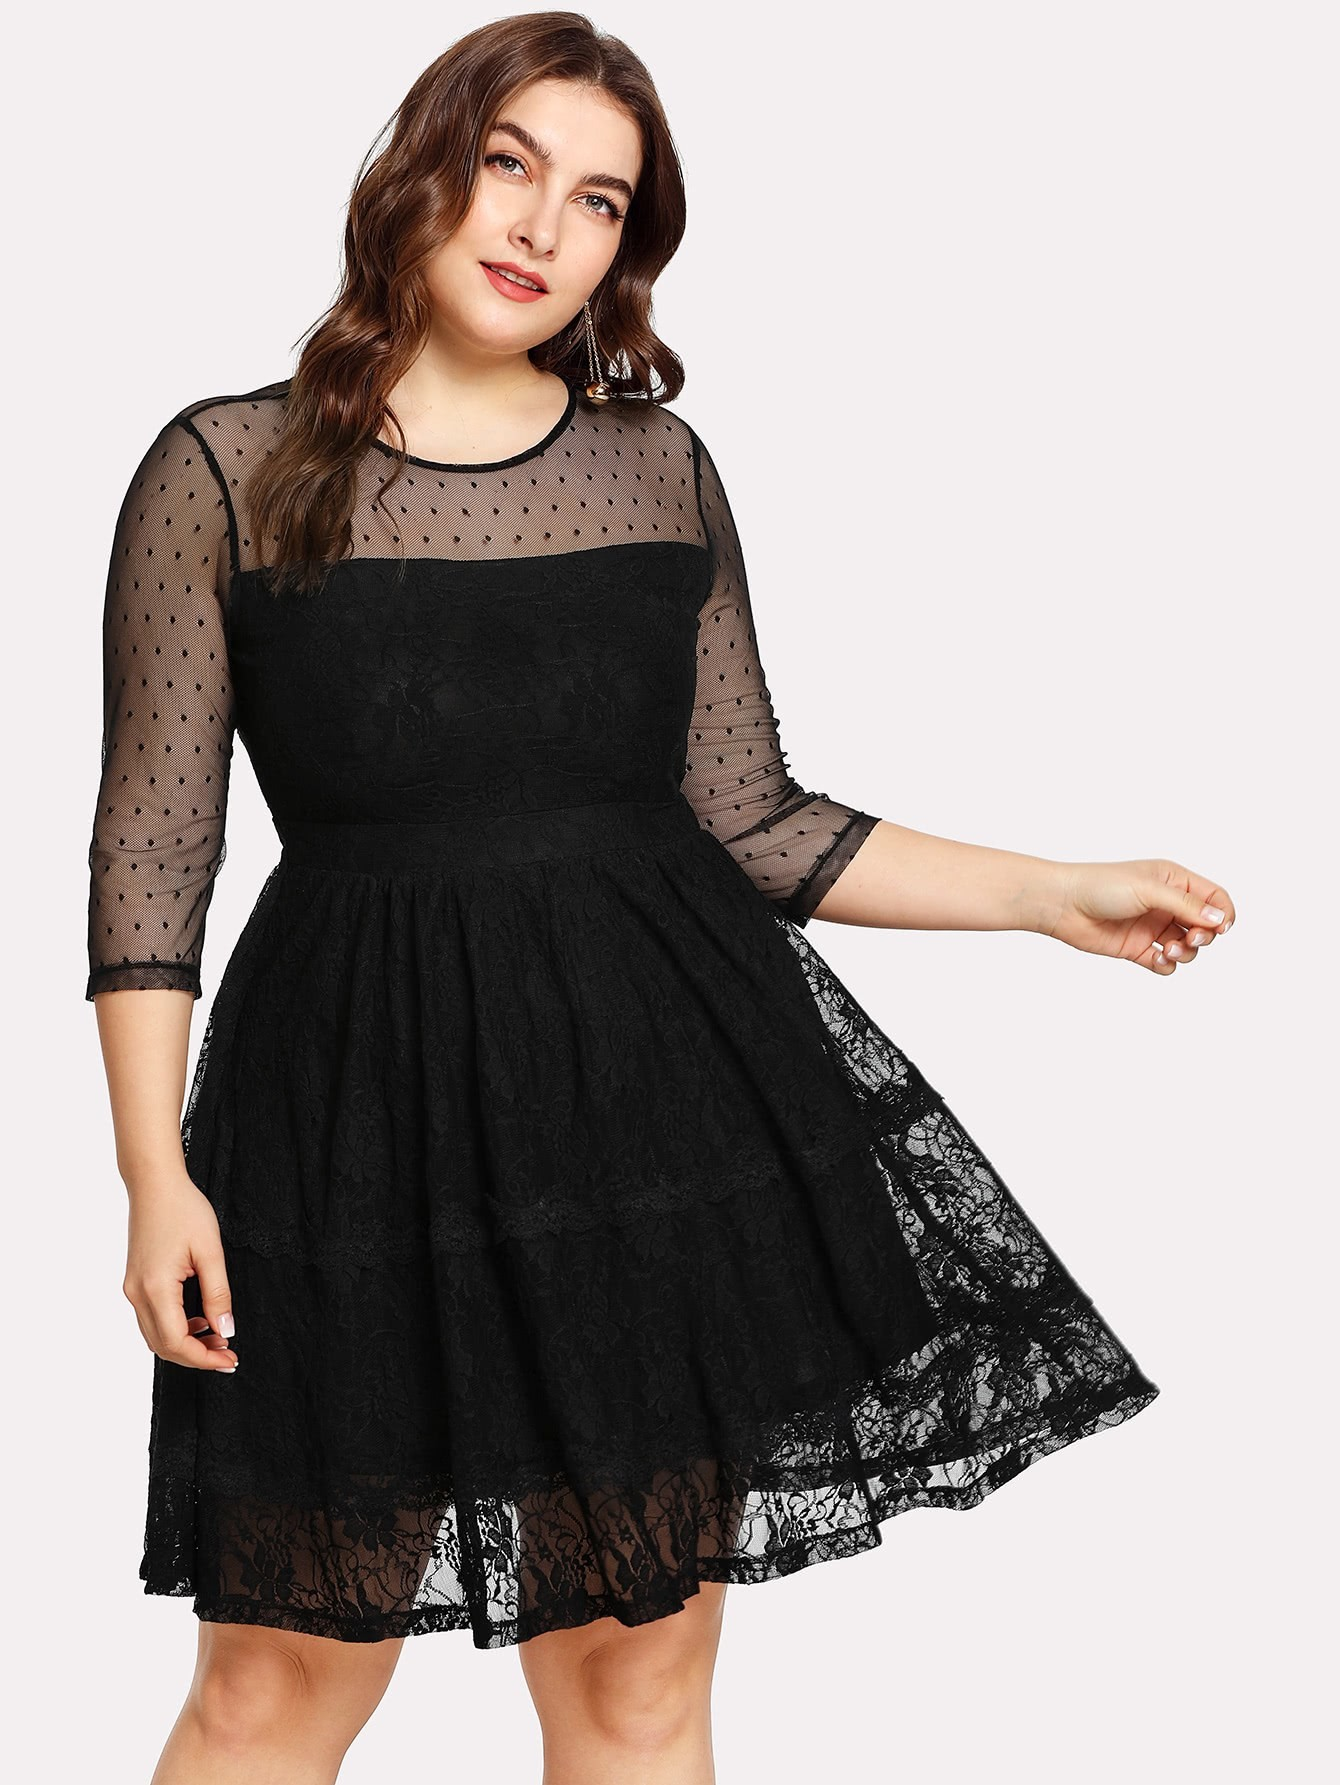 Dot Mesh Shoulder Lace Overlay Fit & Flare Dress dot mesh overlay frill detail fluted cuff top